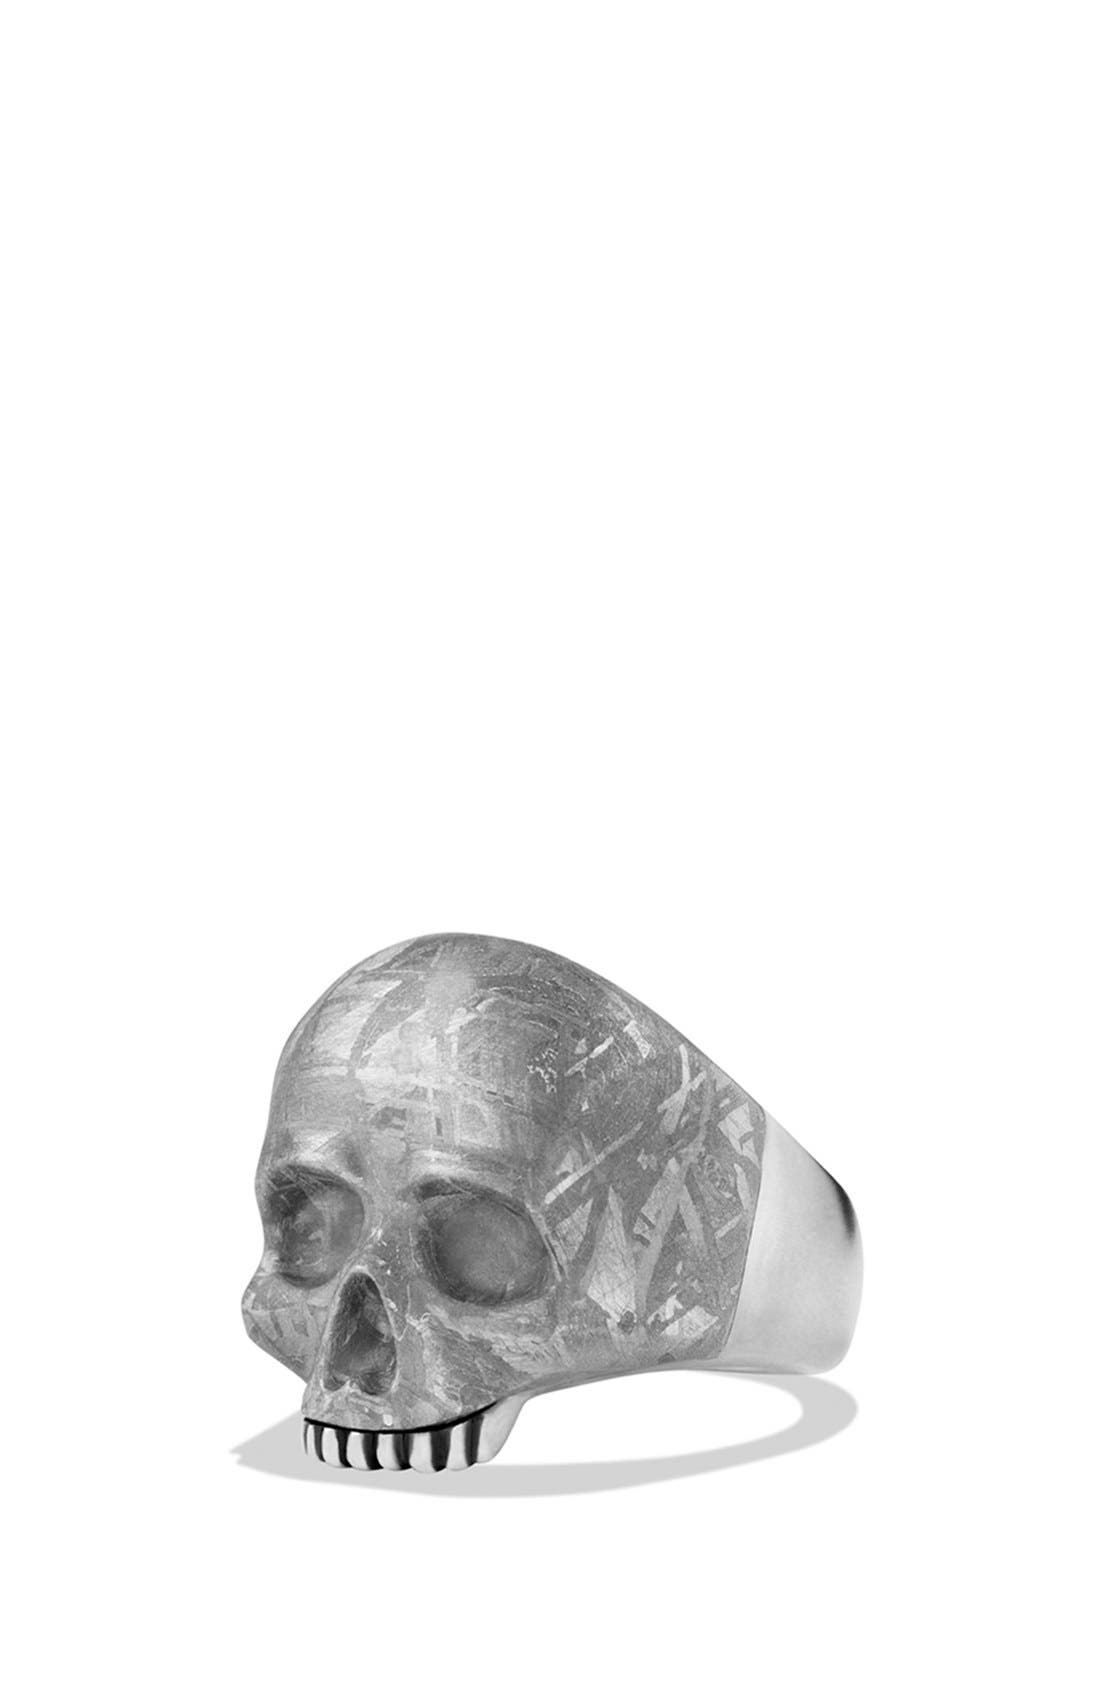 'Skull' Ring with Carved Meteorite,                             Main thumbnail 1, color,                             Meteorite